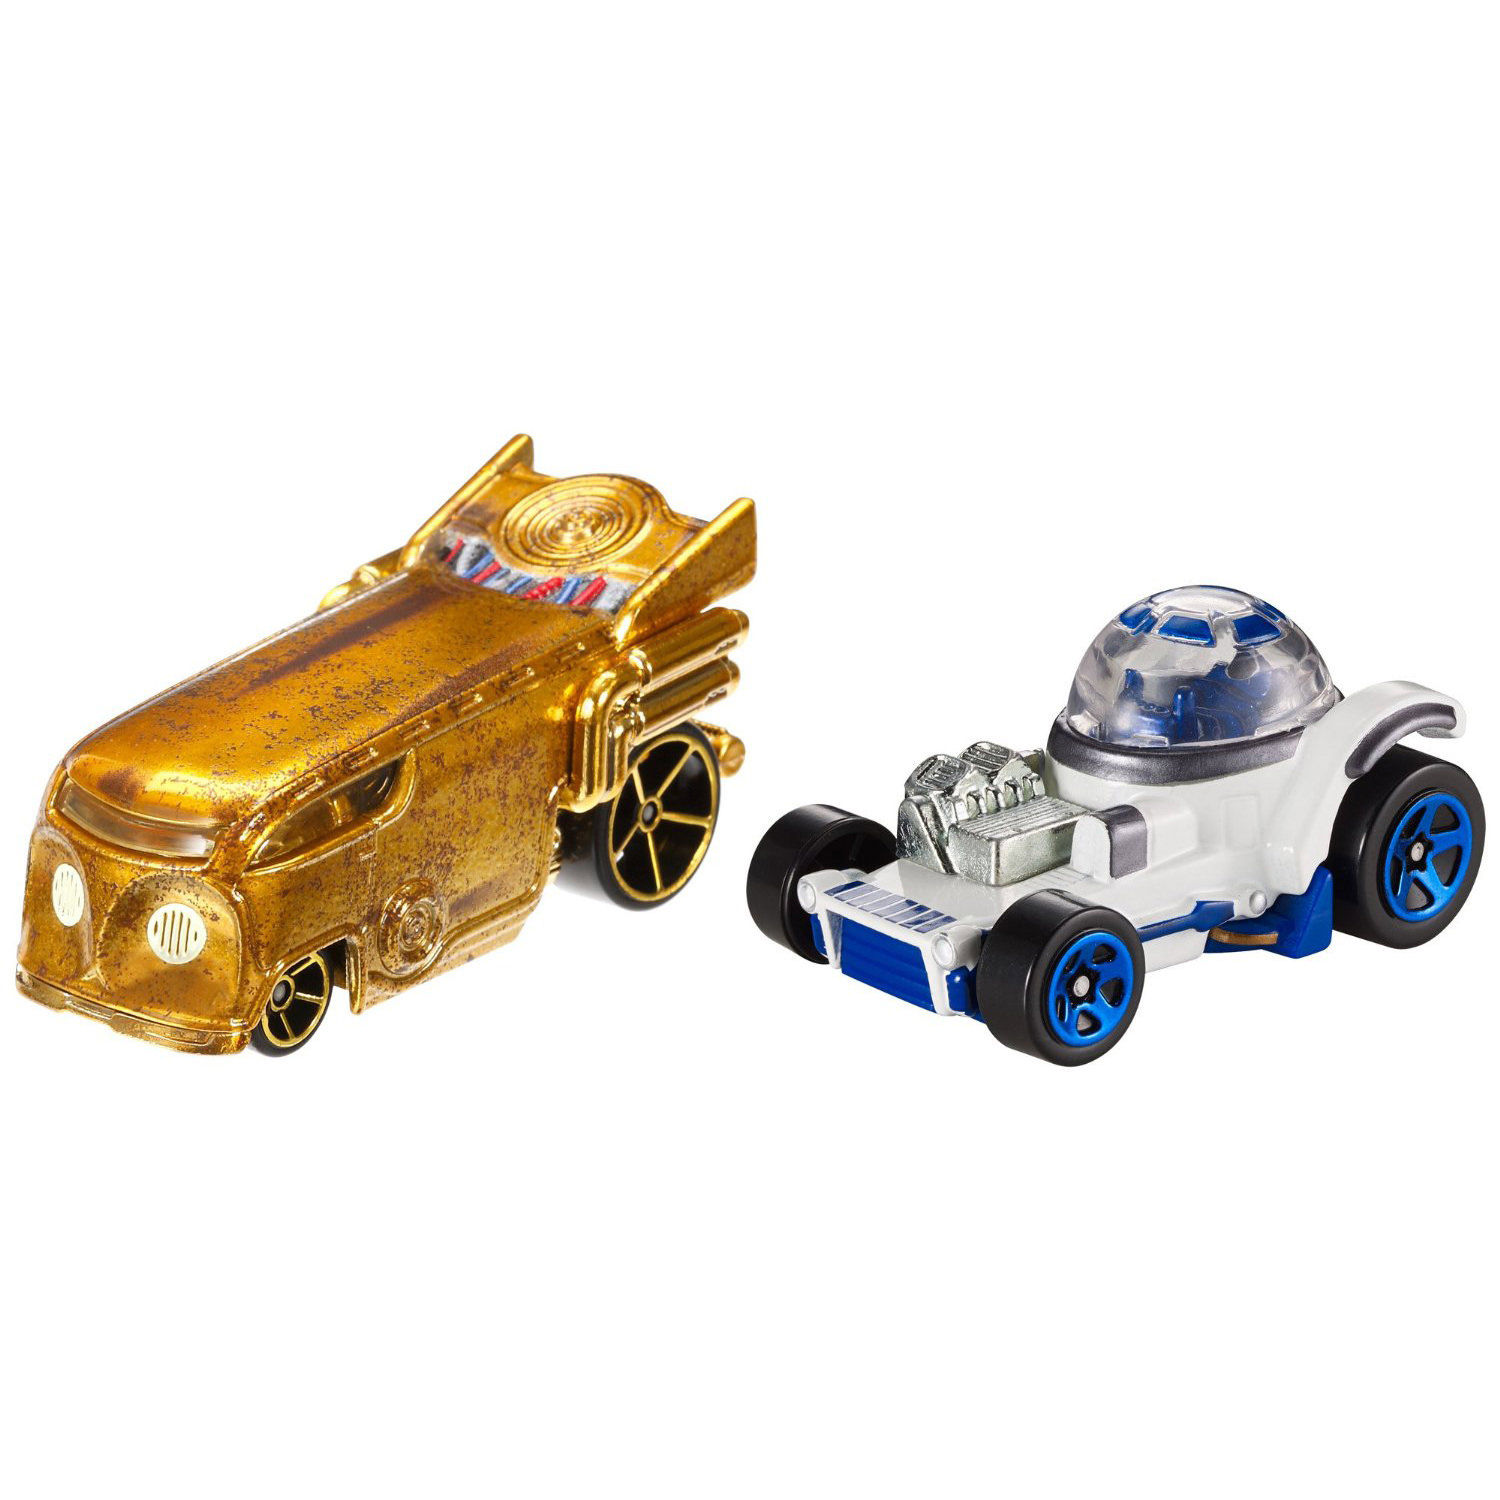 hot wheels star wars r2 d2 and c 3po character car 2 pack at hobby warehouse. Black Bedroom Furniture Sets. Home Design Ideas